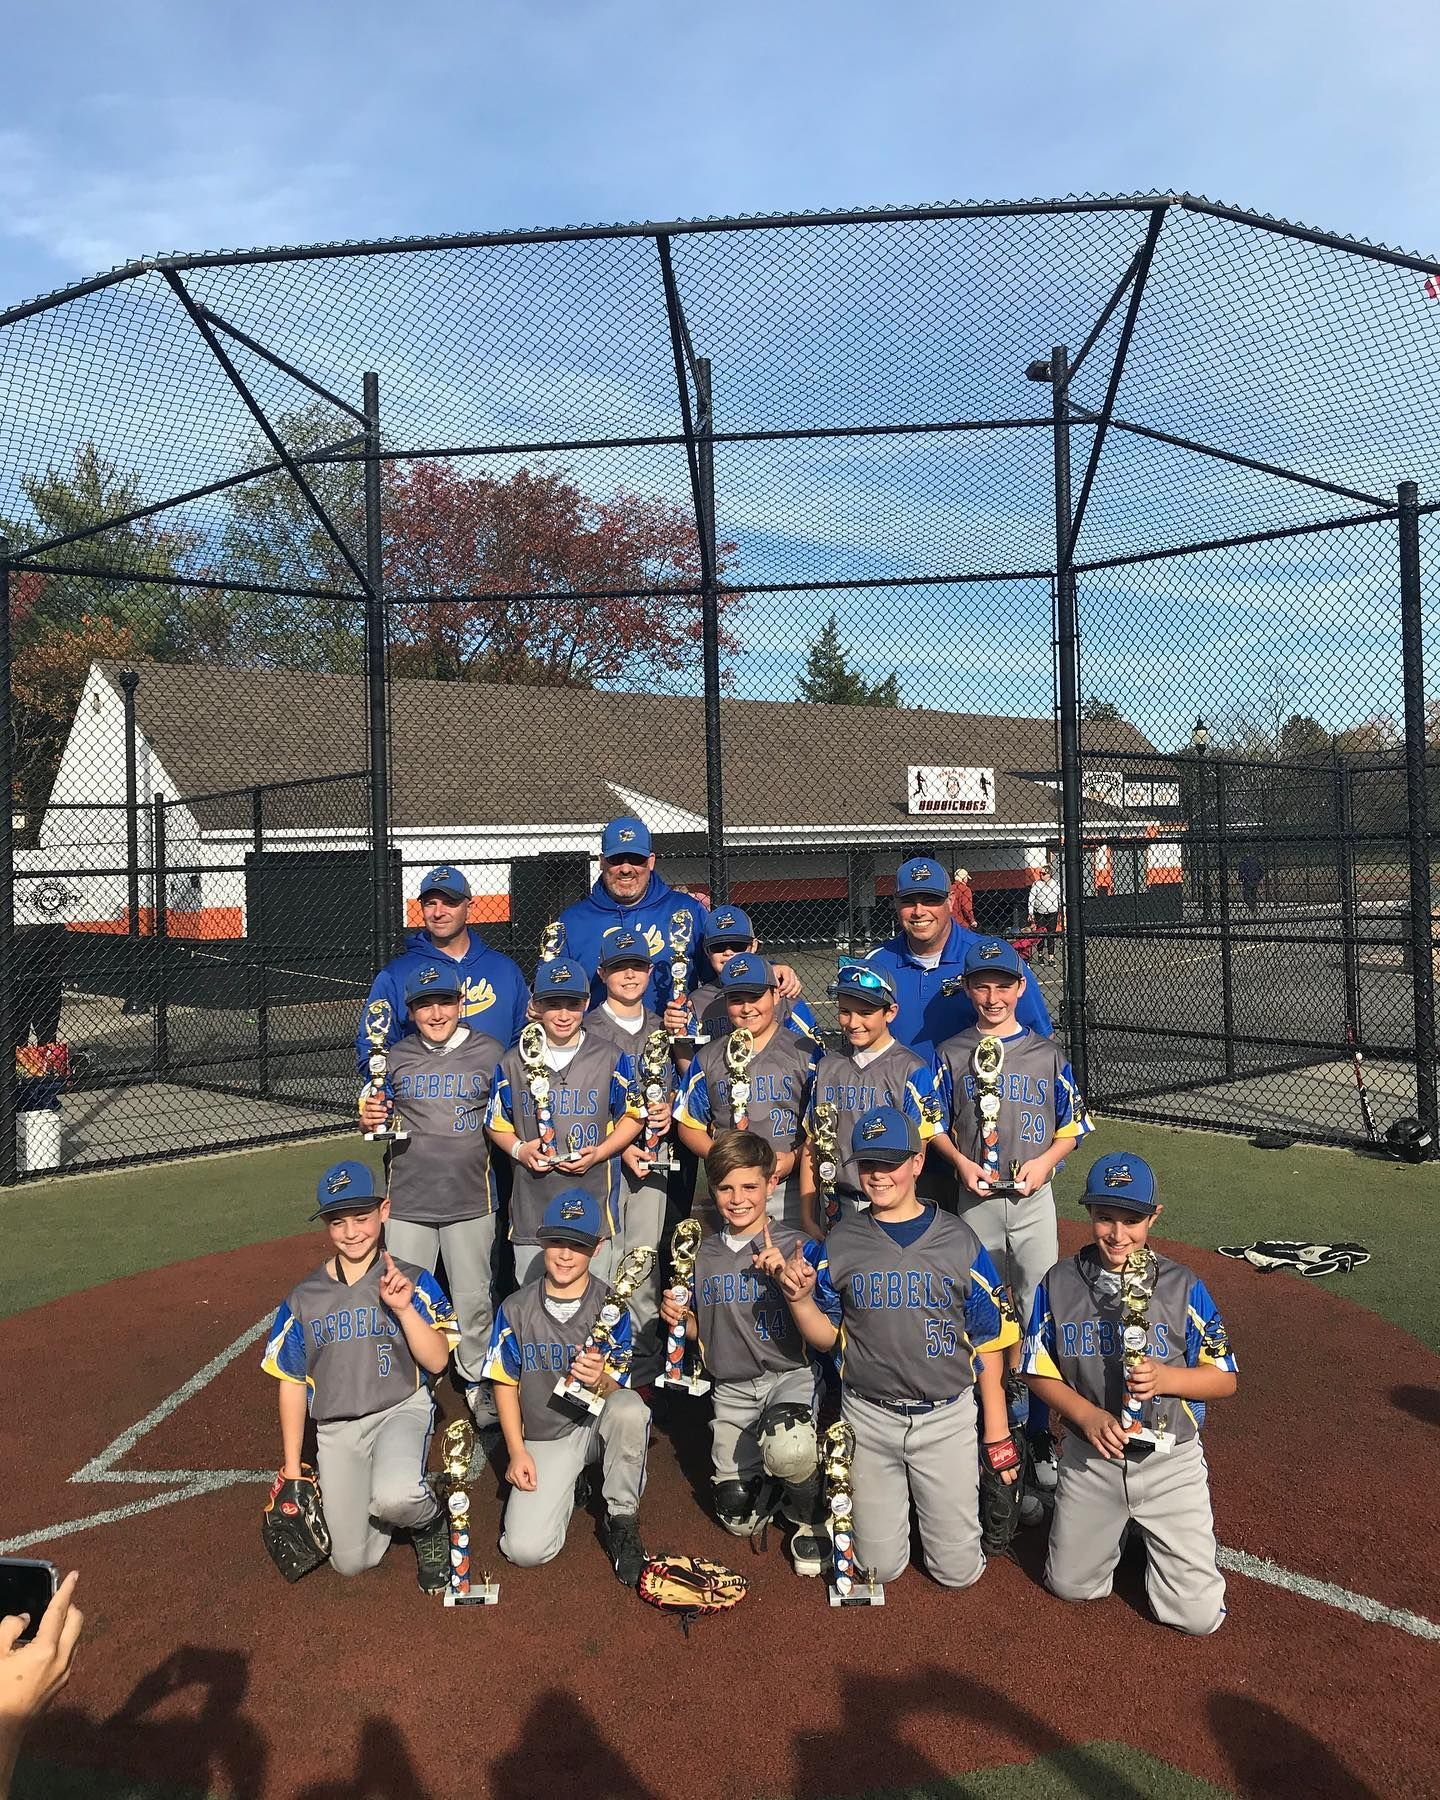 11u American Pops Enderle Invitational Champions In 2020 Youth Sports Baseball League Sports